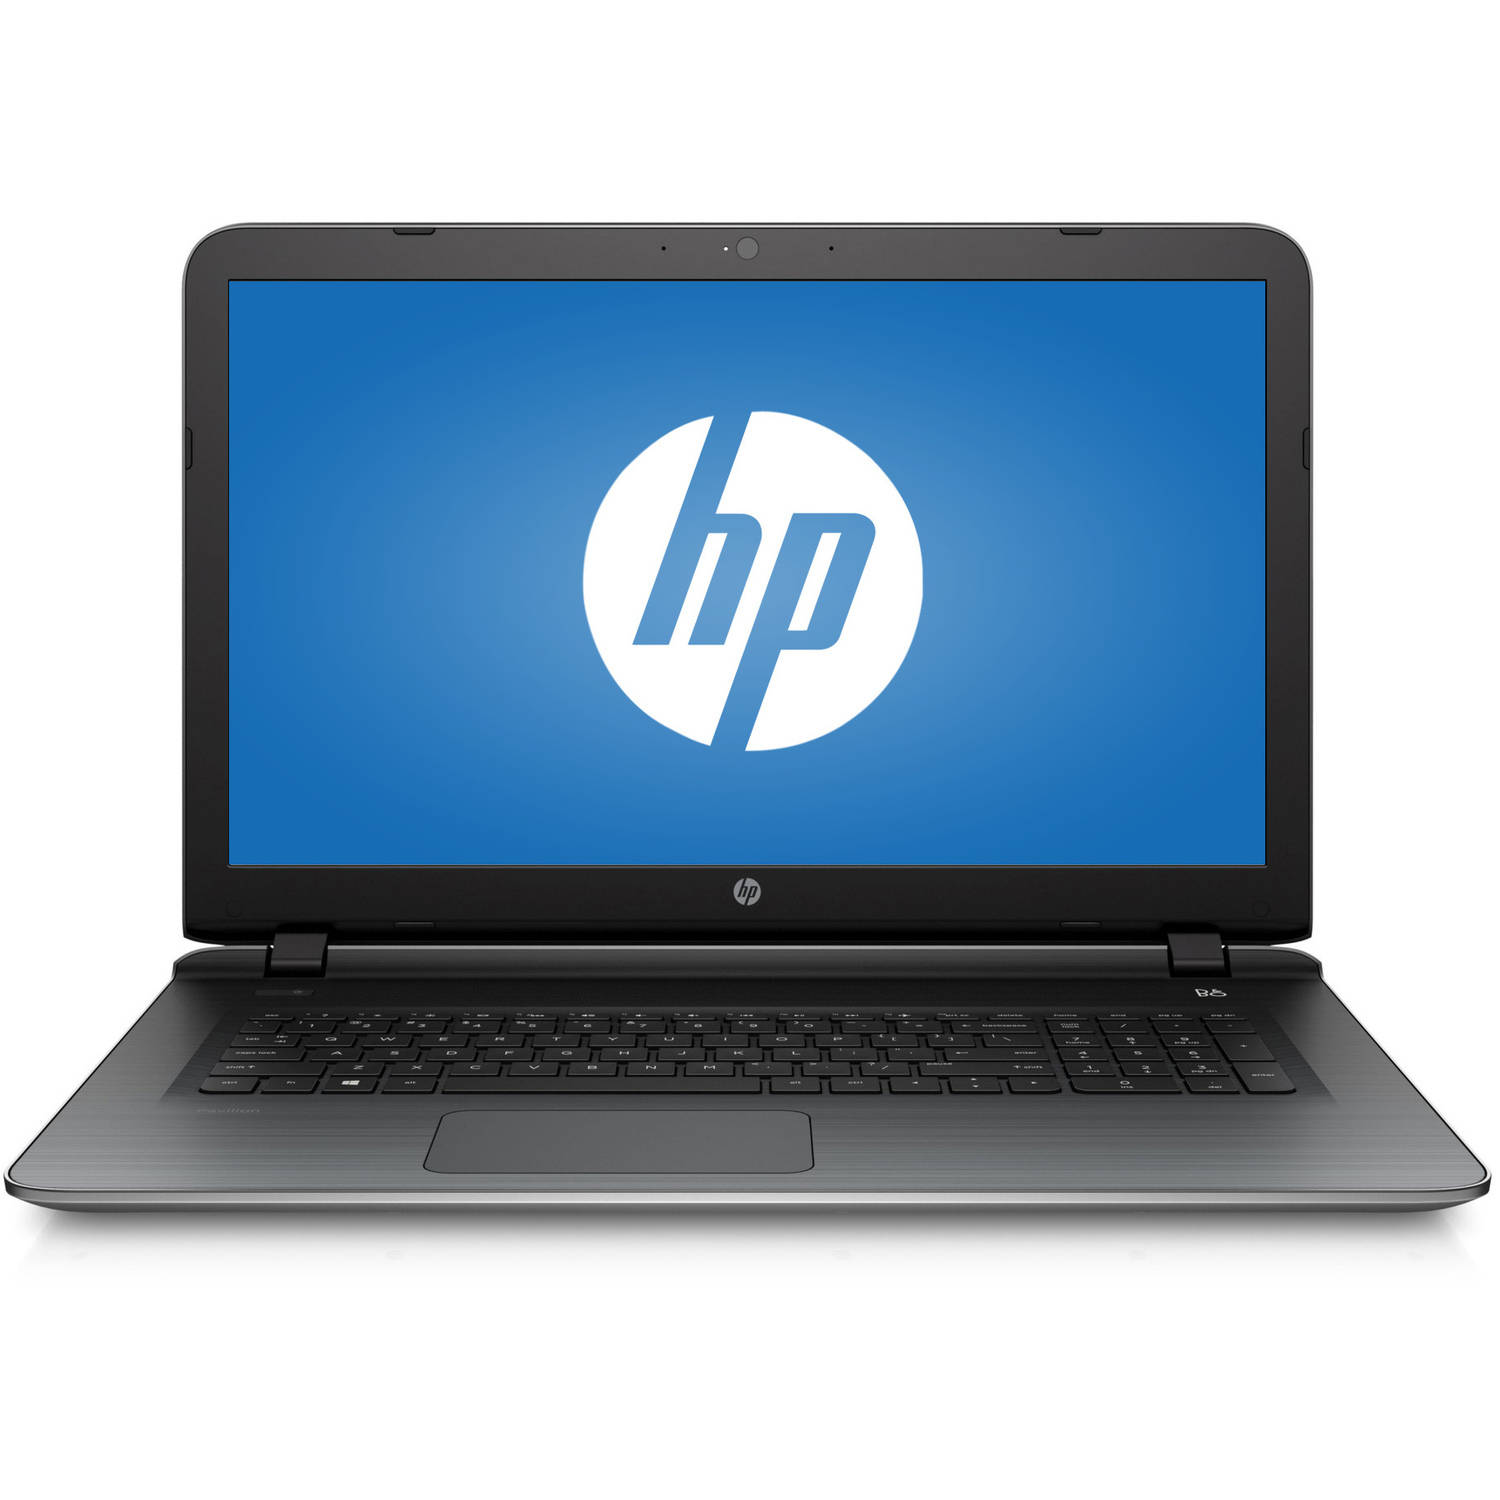 "Factory Refurbished HP Pavilion 17-g120ds 17.3"" Laptop, Windows 10 Home, Intel Pentium N3700 Processor, 8GB RAM, 1TB Hard Drive"